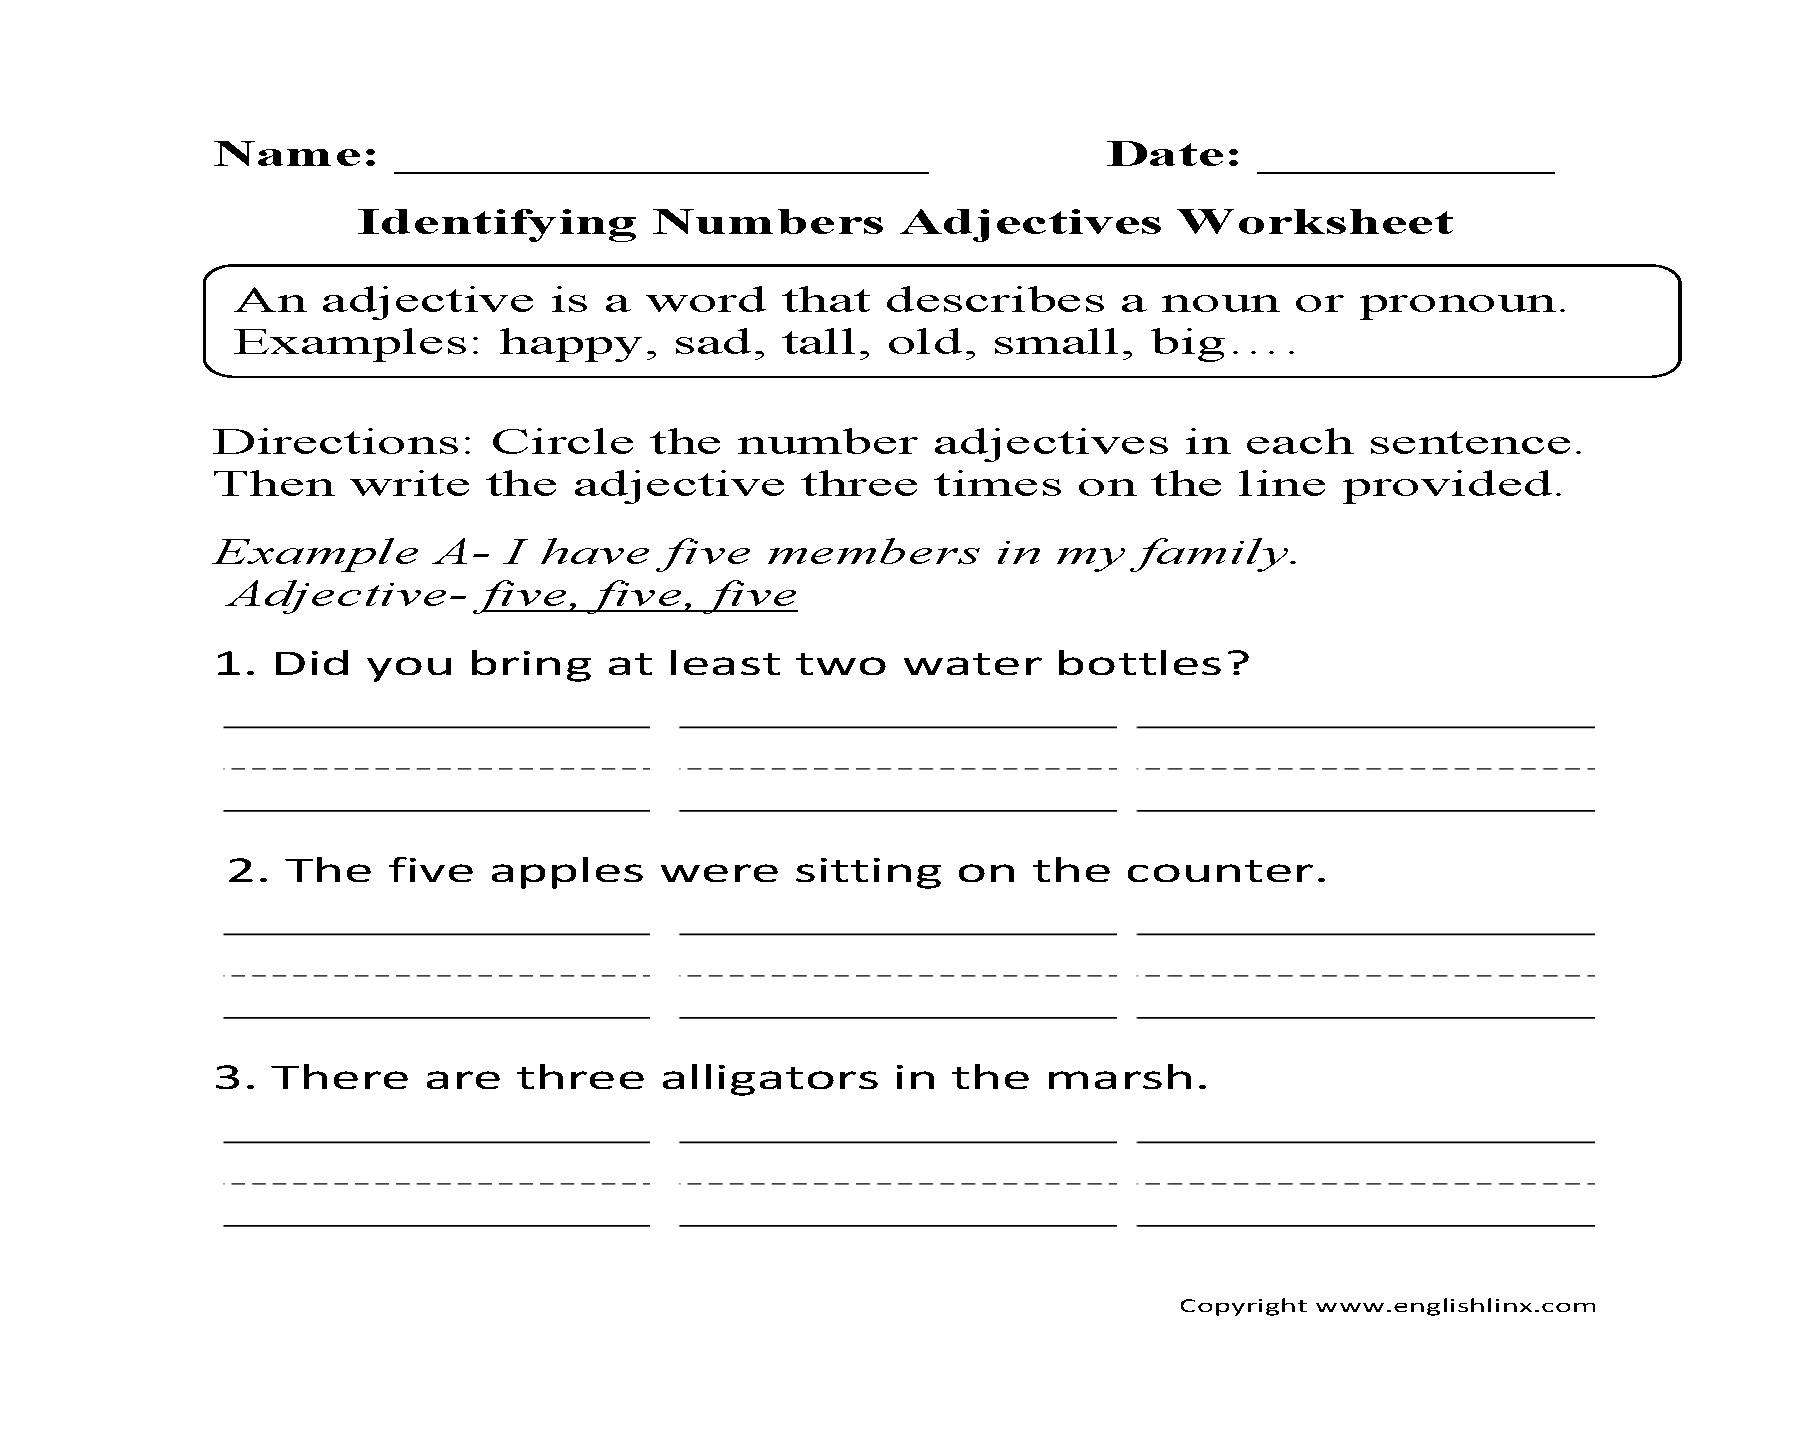 Worksheet Adjectives Worksheet For 3rd Grade adjectives worksheets regular worksheet